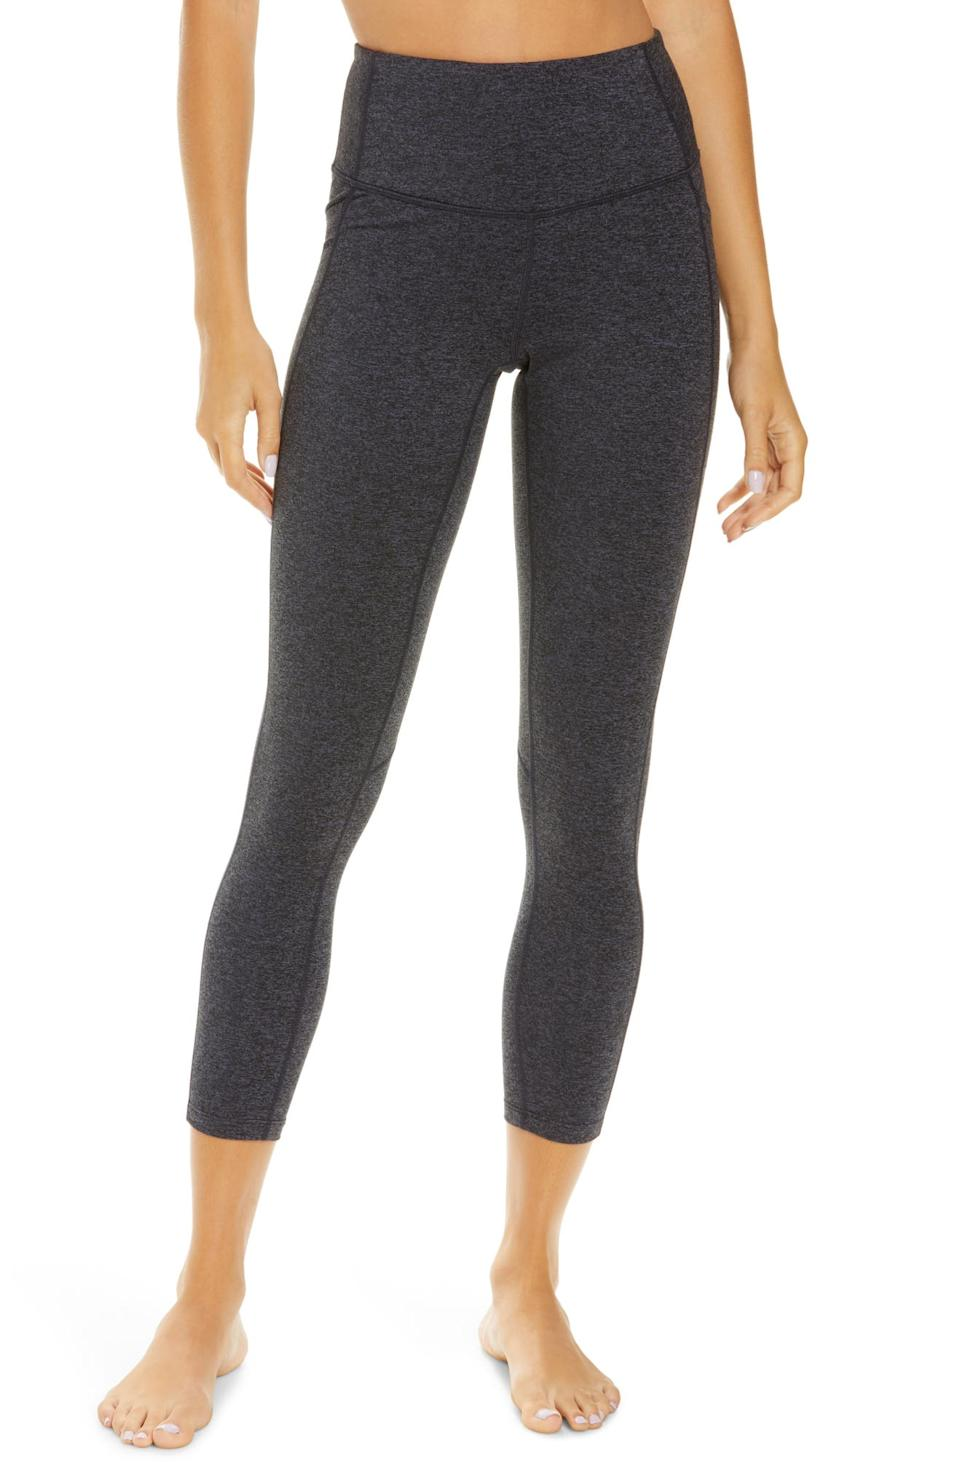 Live In High Waist Pocket 7/8 Leggings. Image via Nordstrom.